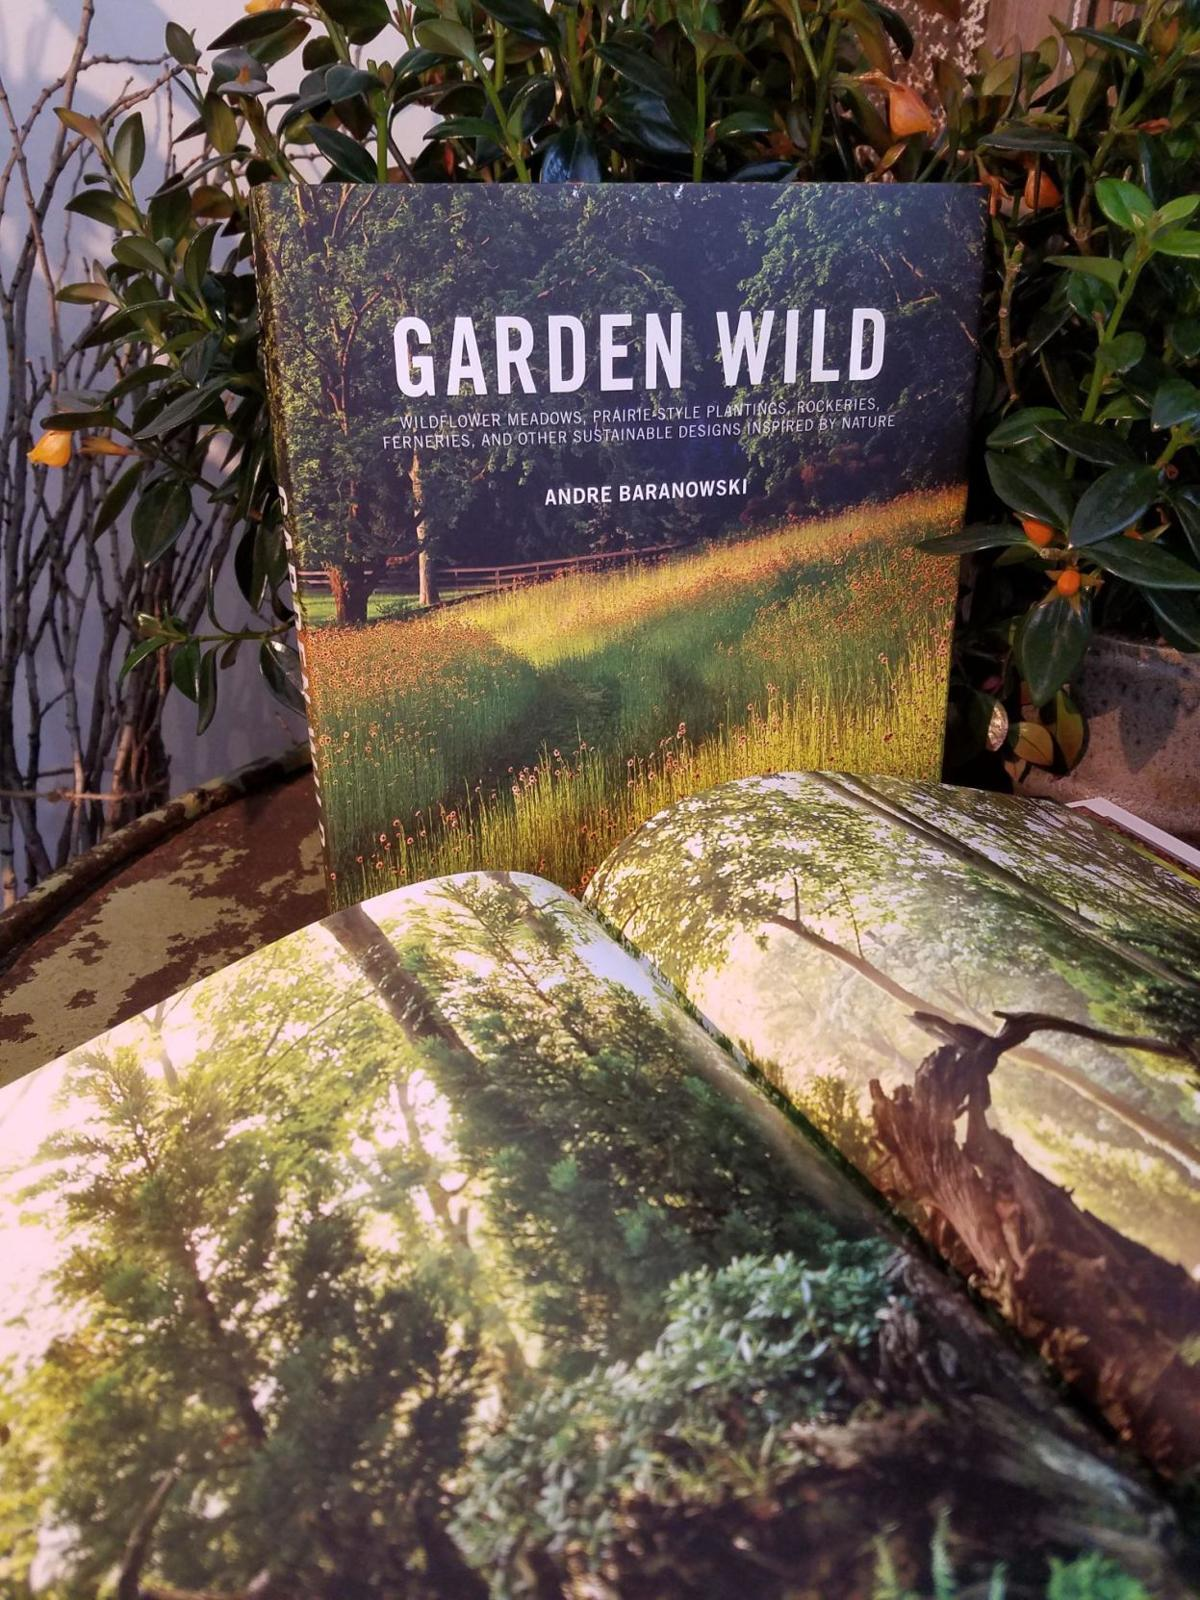 In New Preston, book signing for 'Garden Wild' inspires growers with natural design